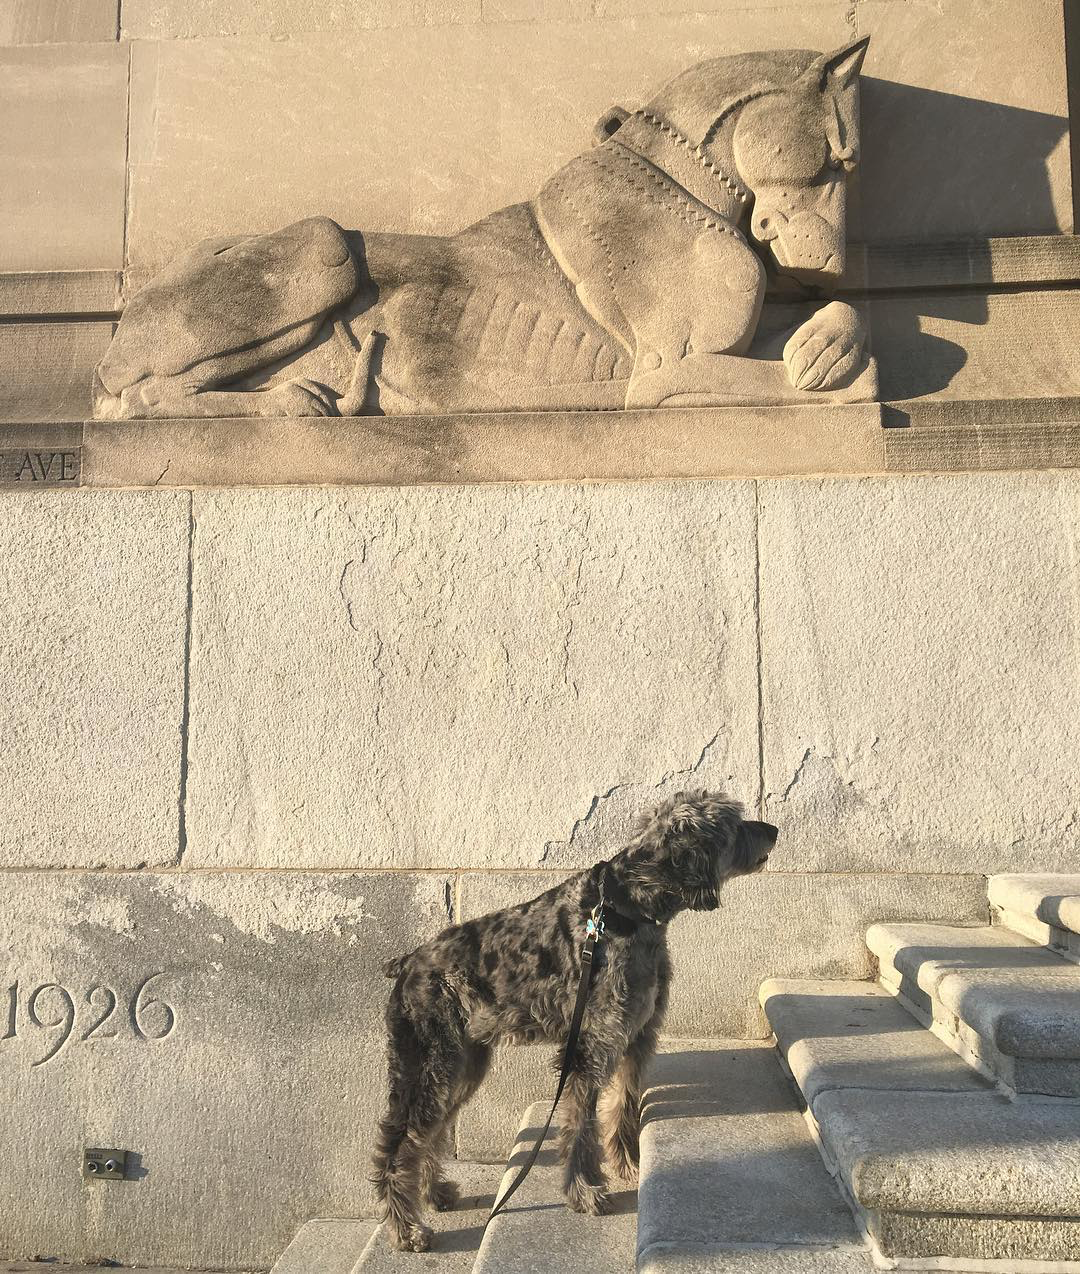 Duke the Aussiedoodle in front of a sculpture of a dog